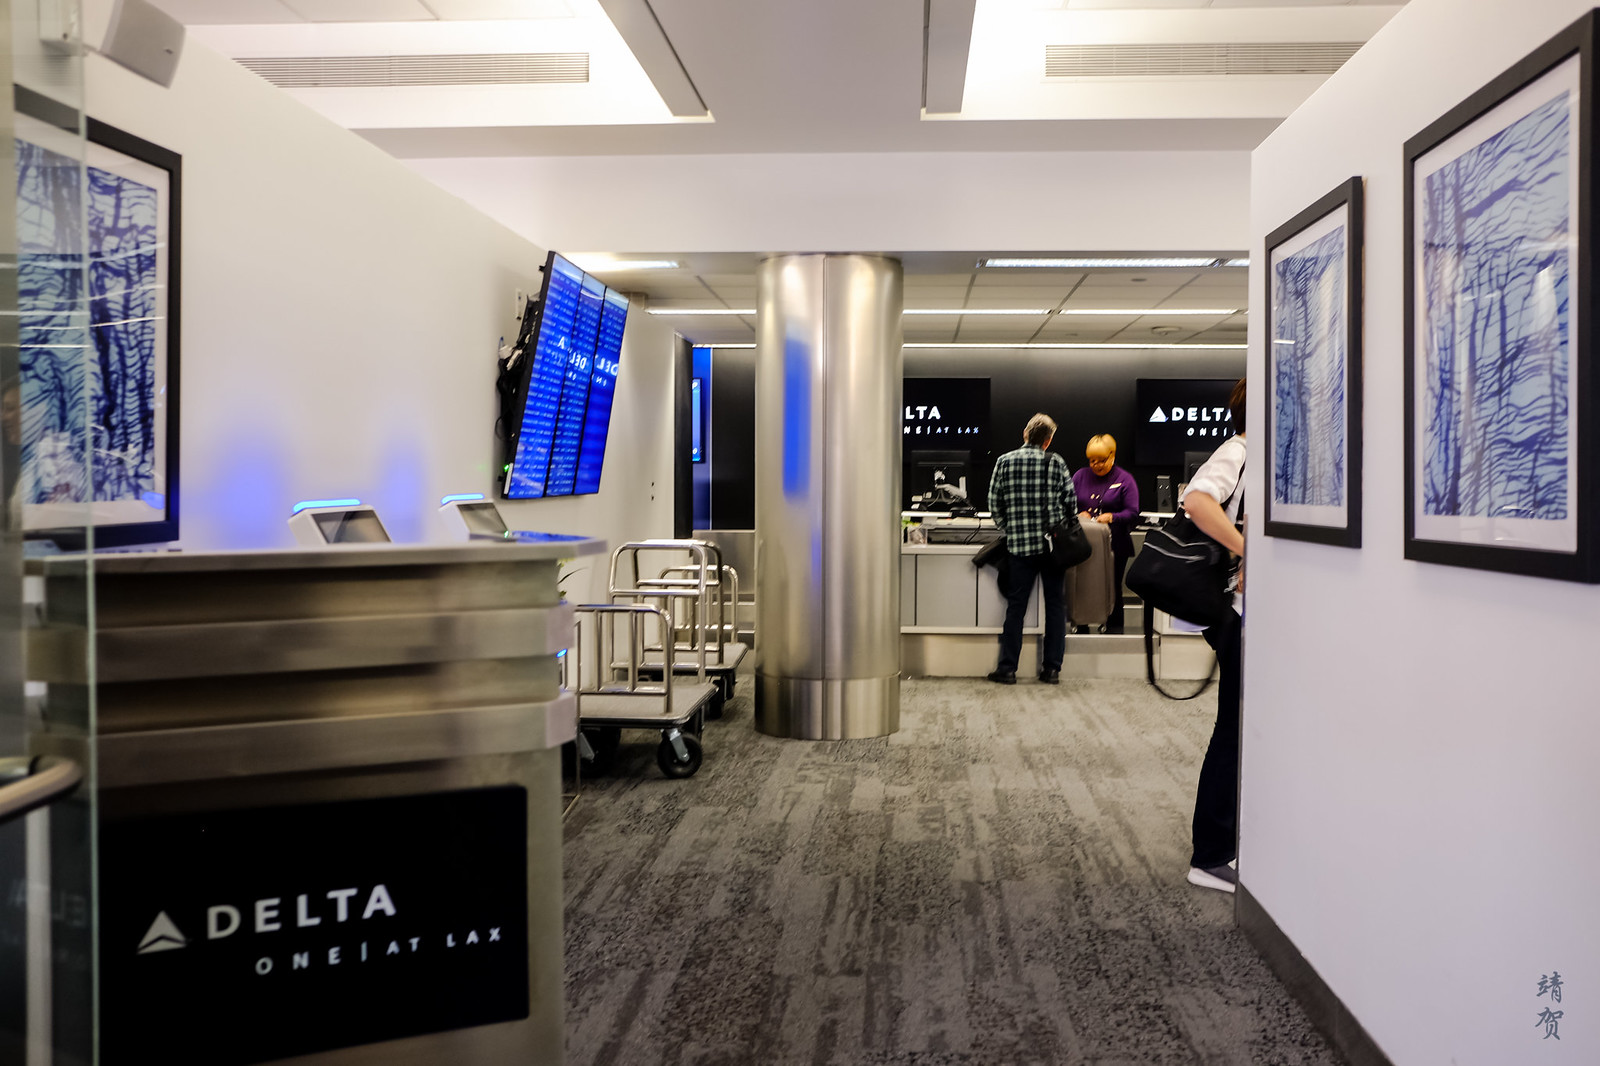 Entrance to Delta ONE counter